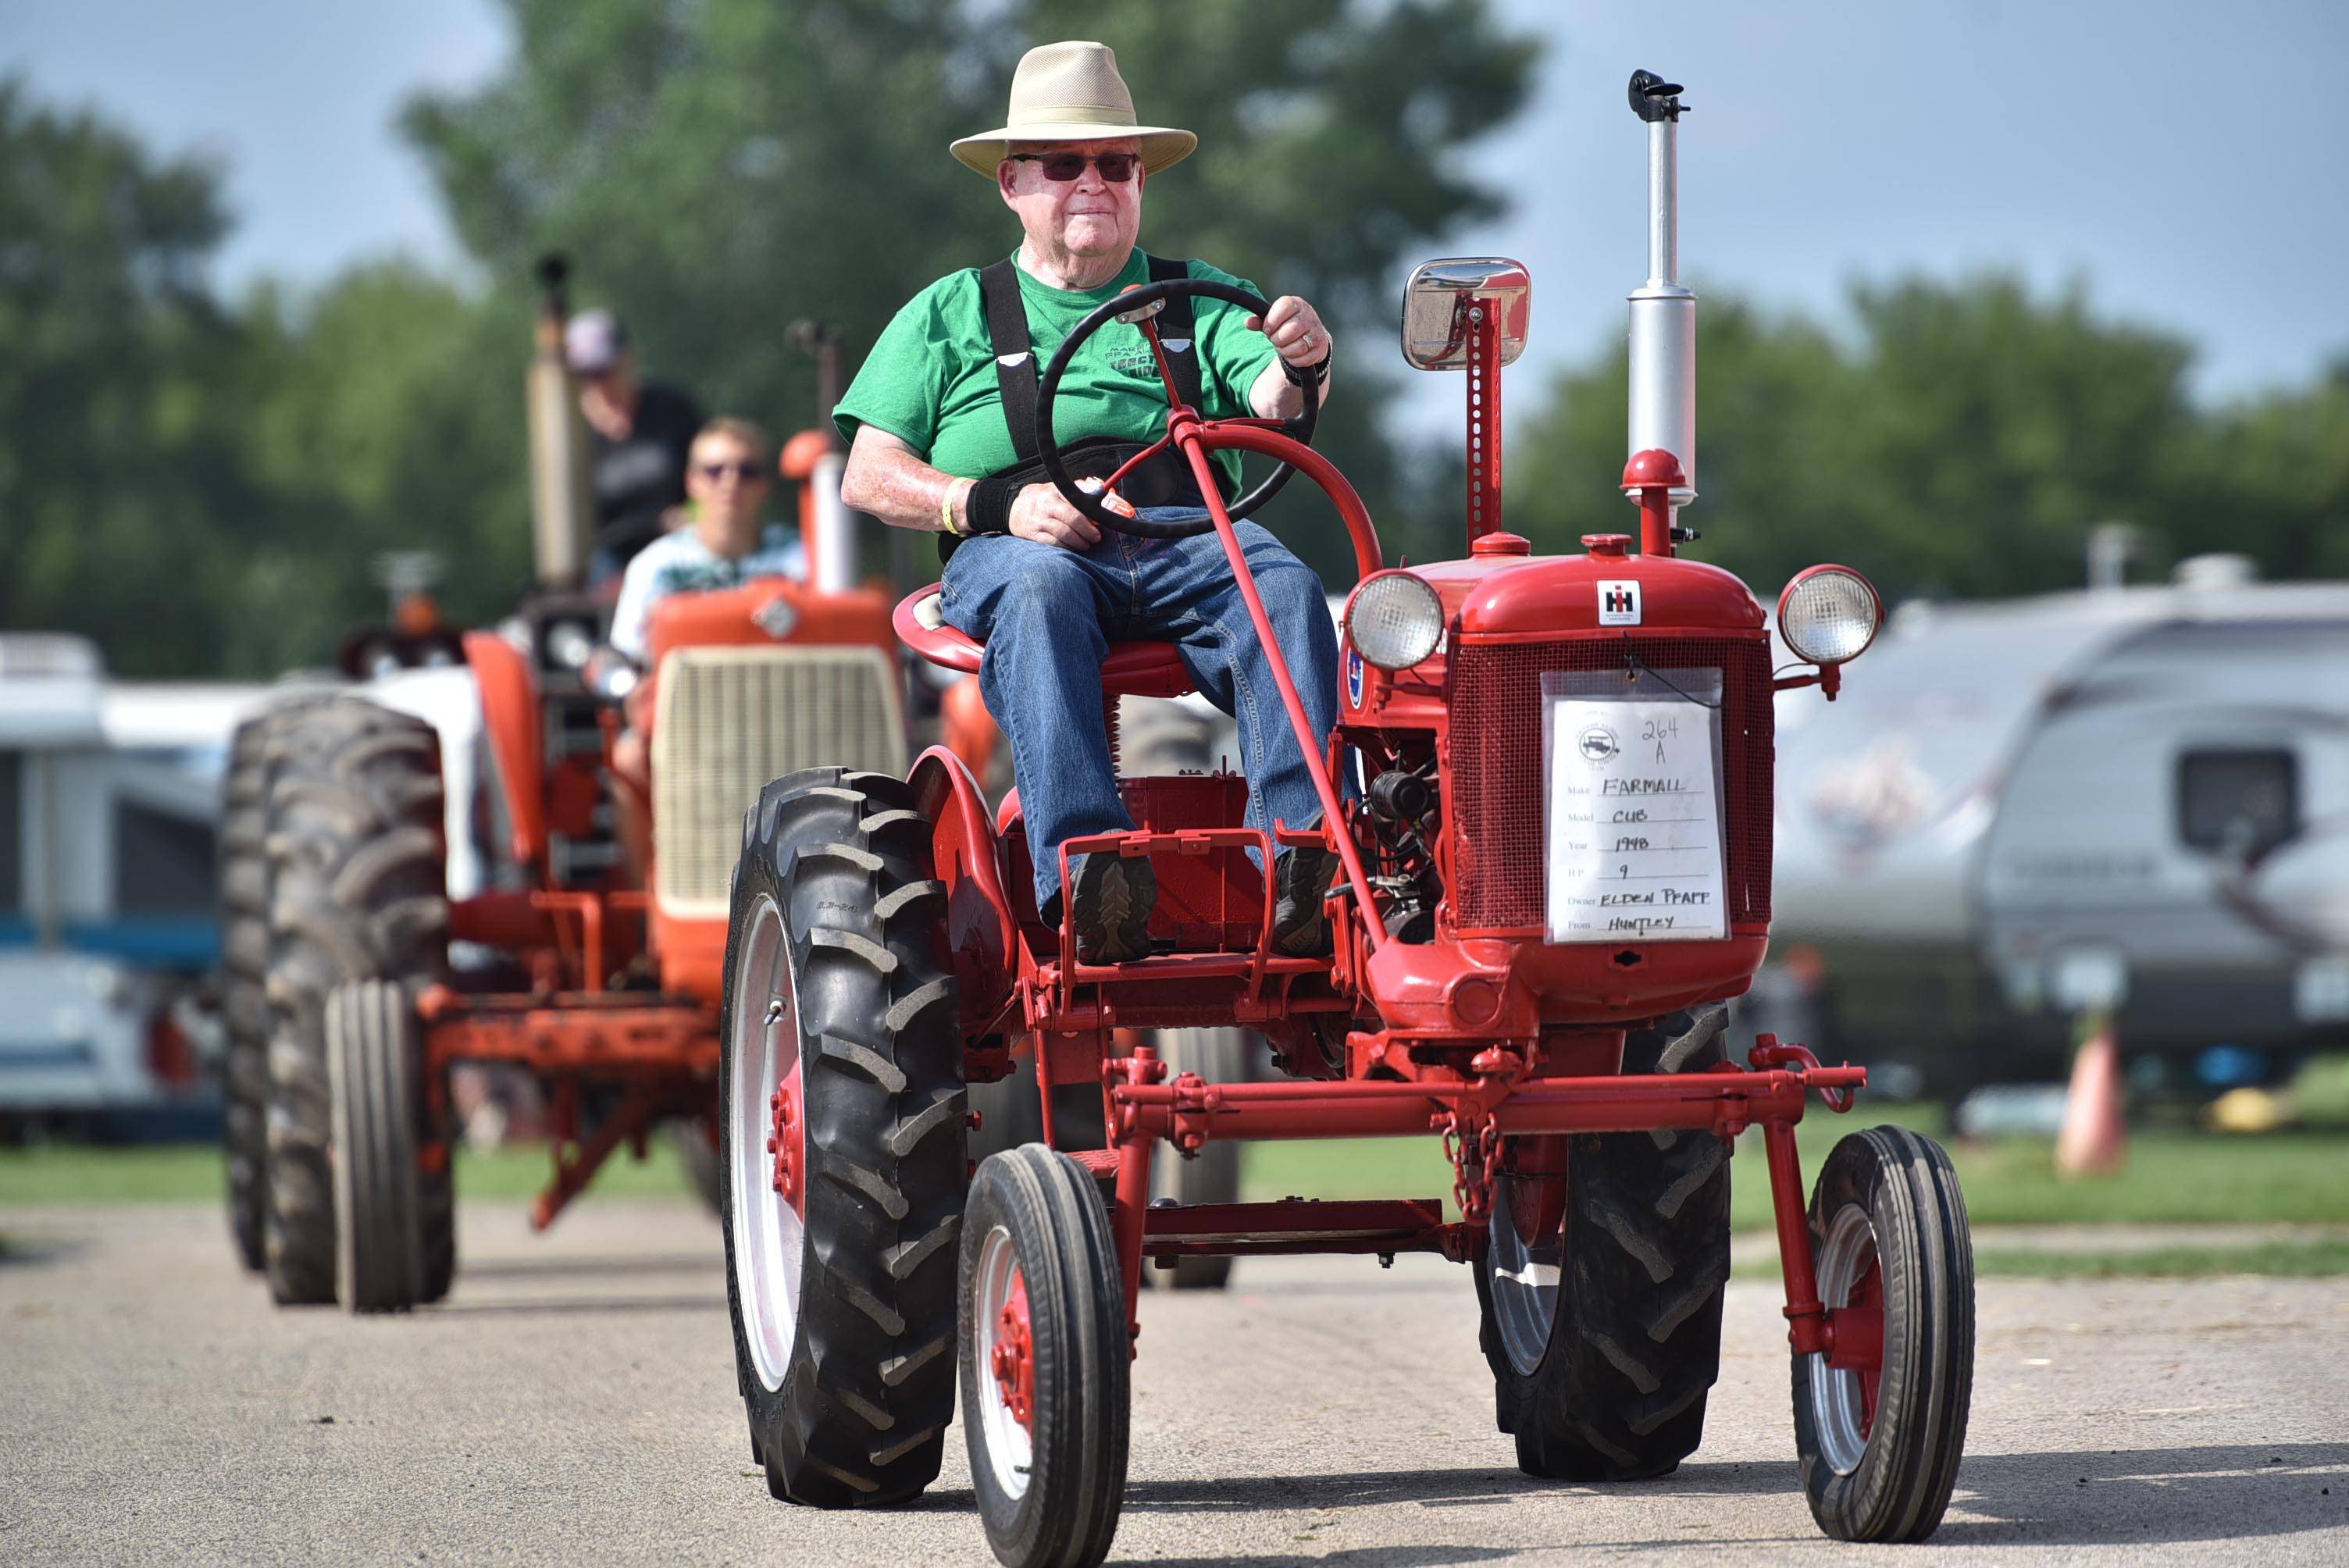 Elden Pfaff, of Huntley steers his 1948 Farmall Cub through the McHenry County Fairgrounds in Woodstock Wednesday, during a tractor parade in the 2016 fair. The small tractor produces only 9 horsepower.